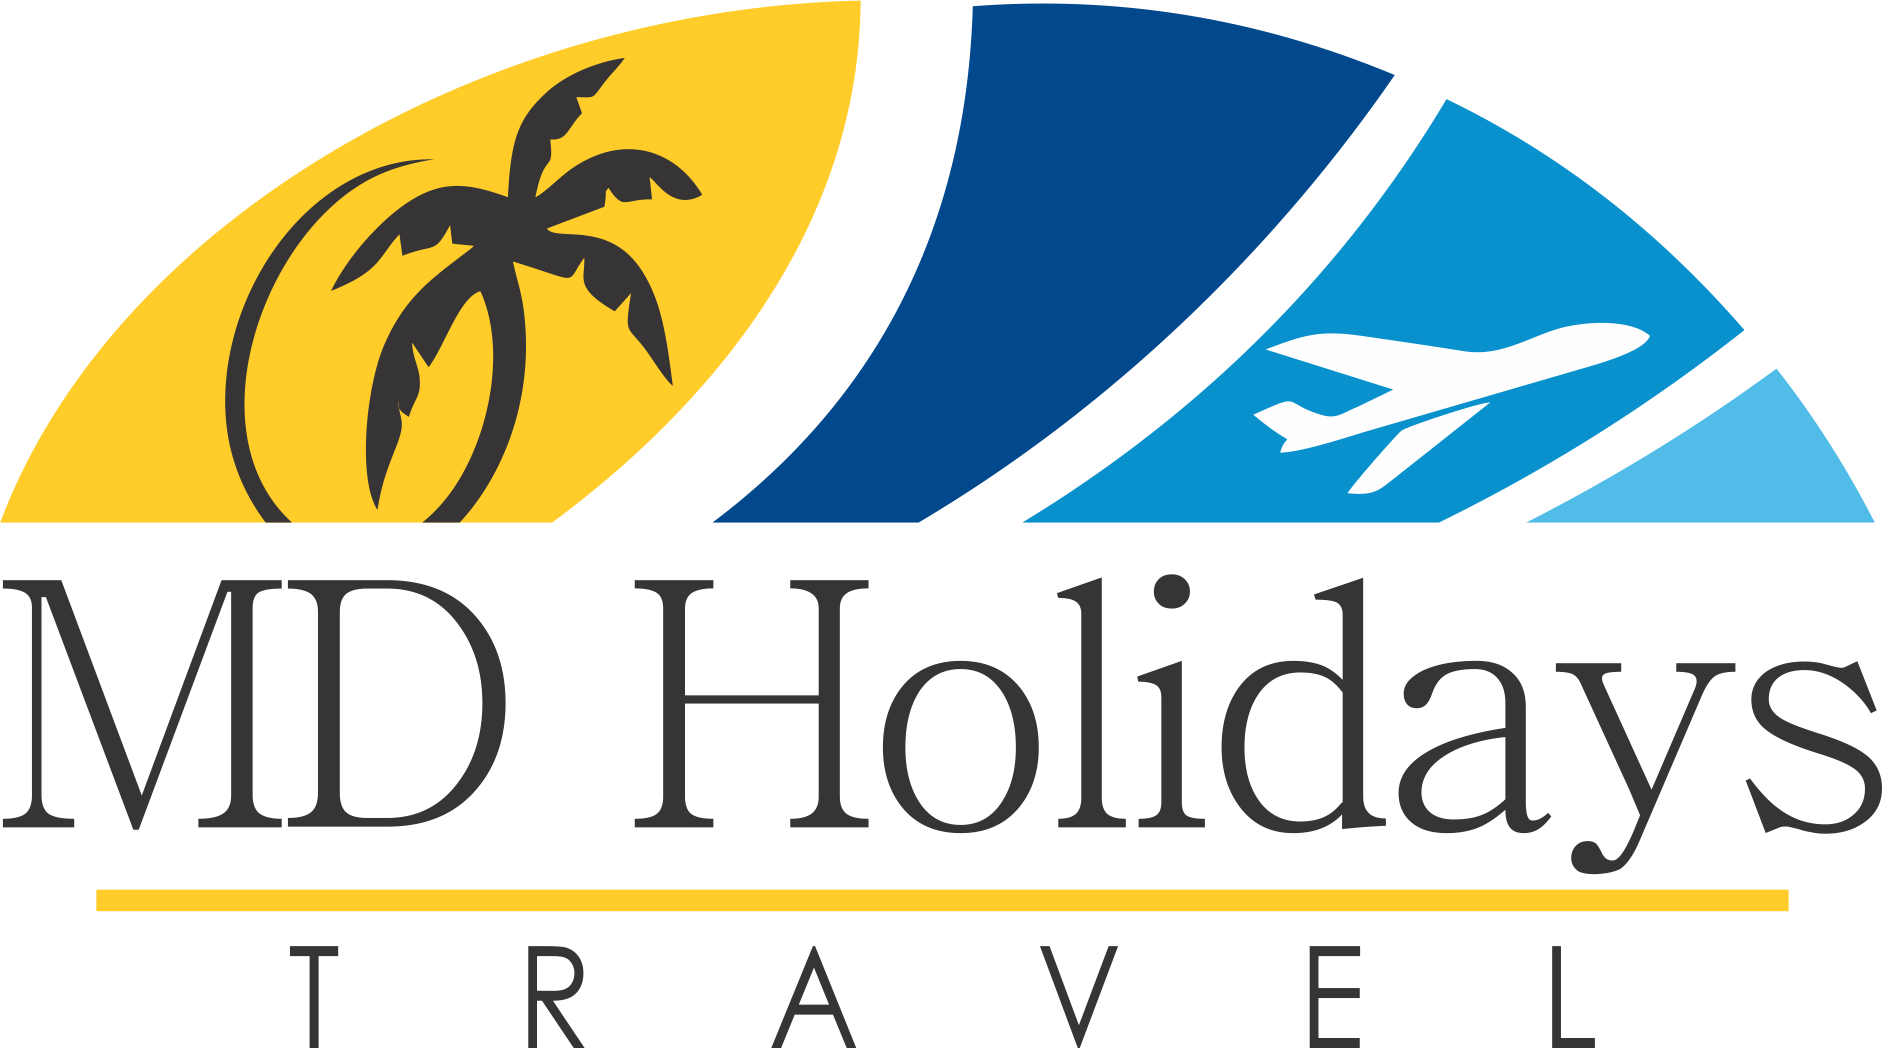 MD HOLIDAYS TRAVEL | Venus - MD HOLIDAYS TRAVEL